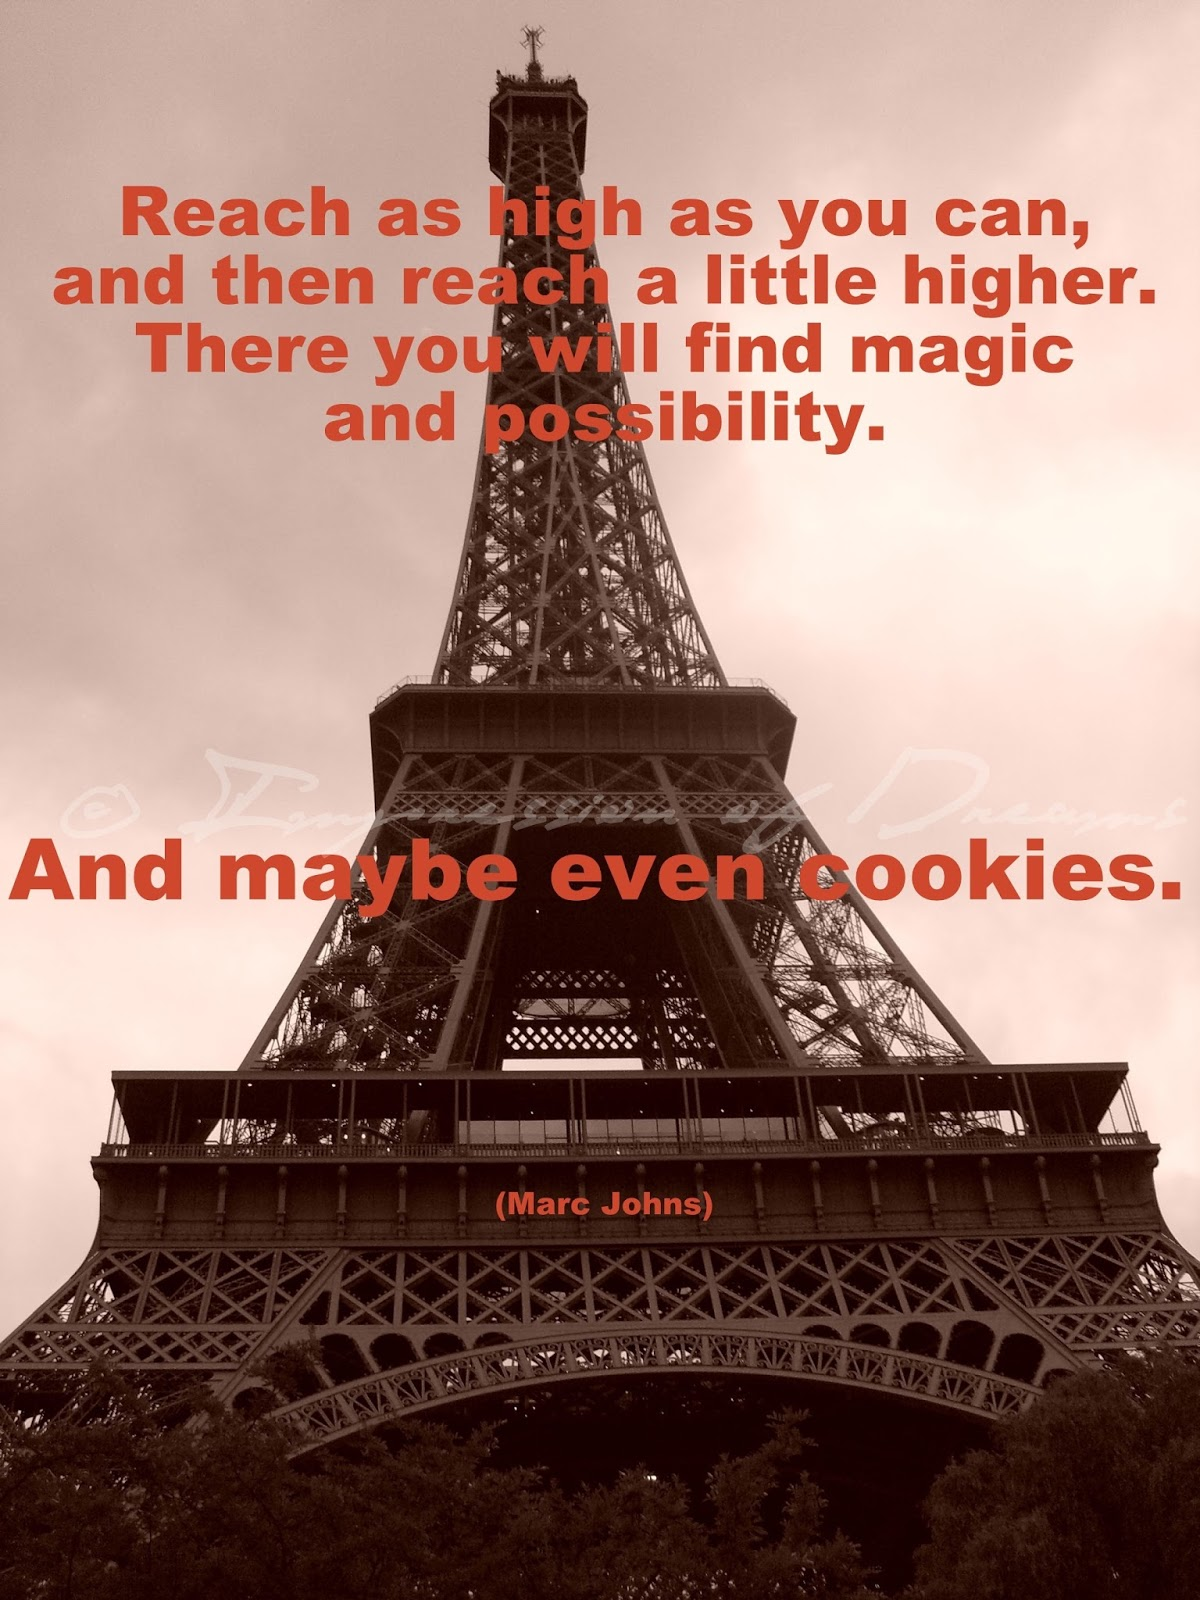 Reach as high as you can, and then reach a little higher. There you will find magic and possibility. And maybe even cookies.